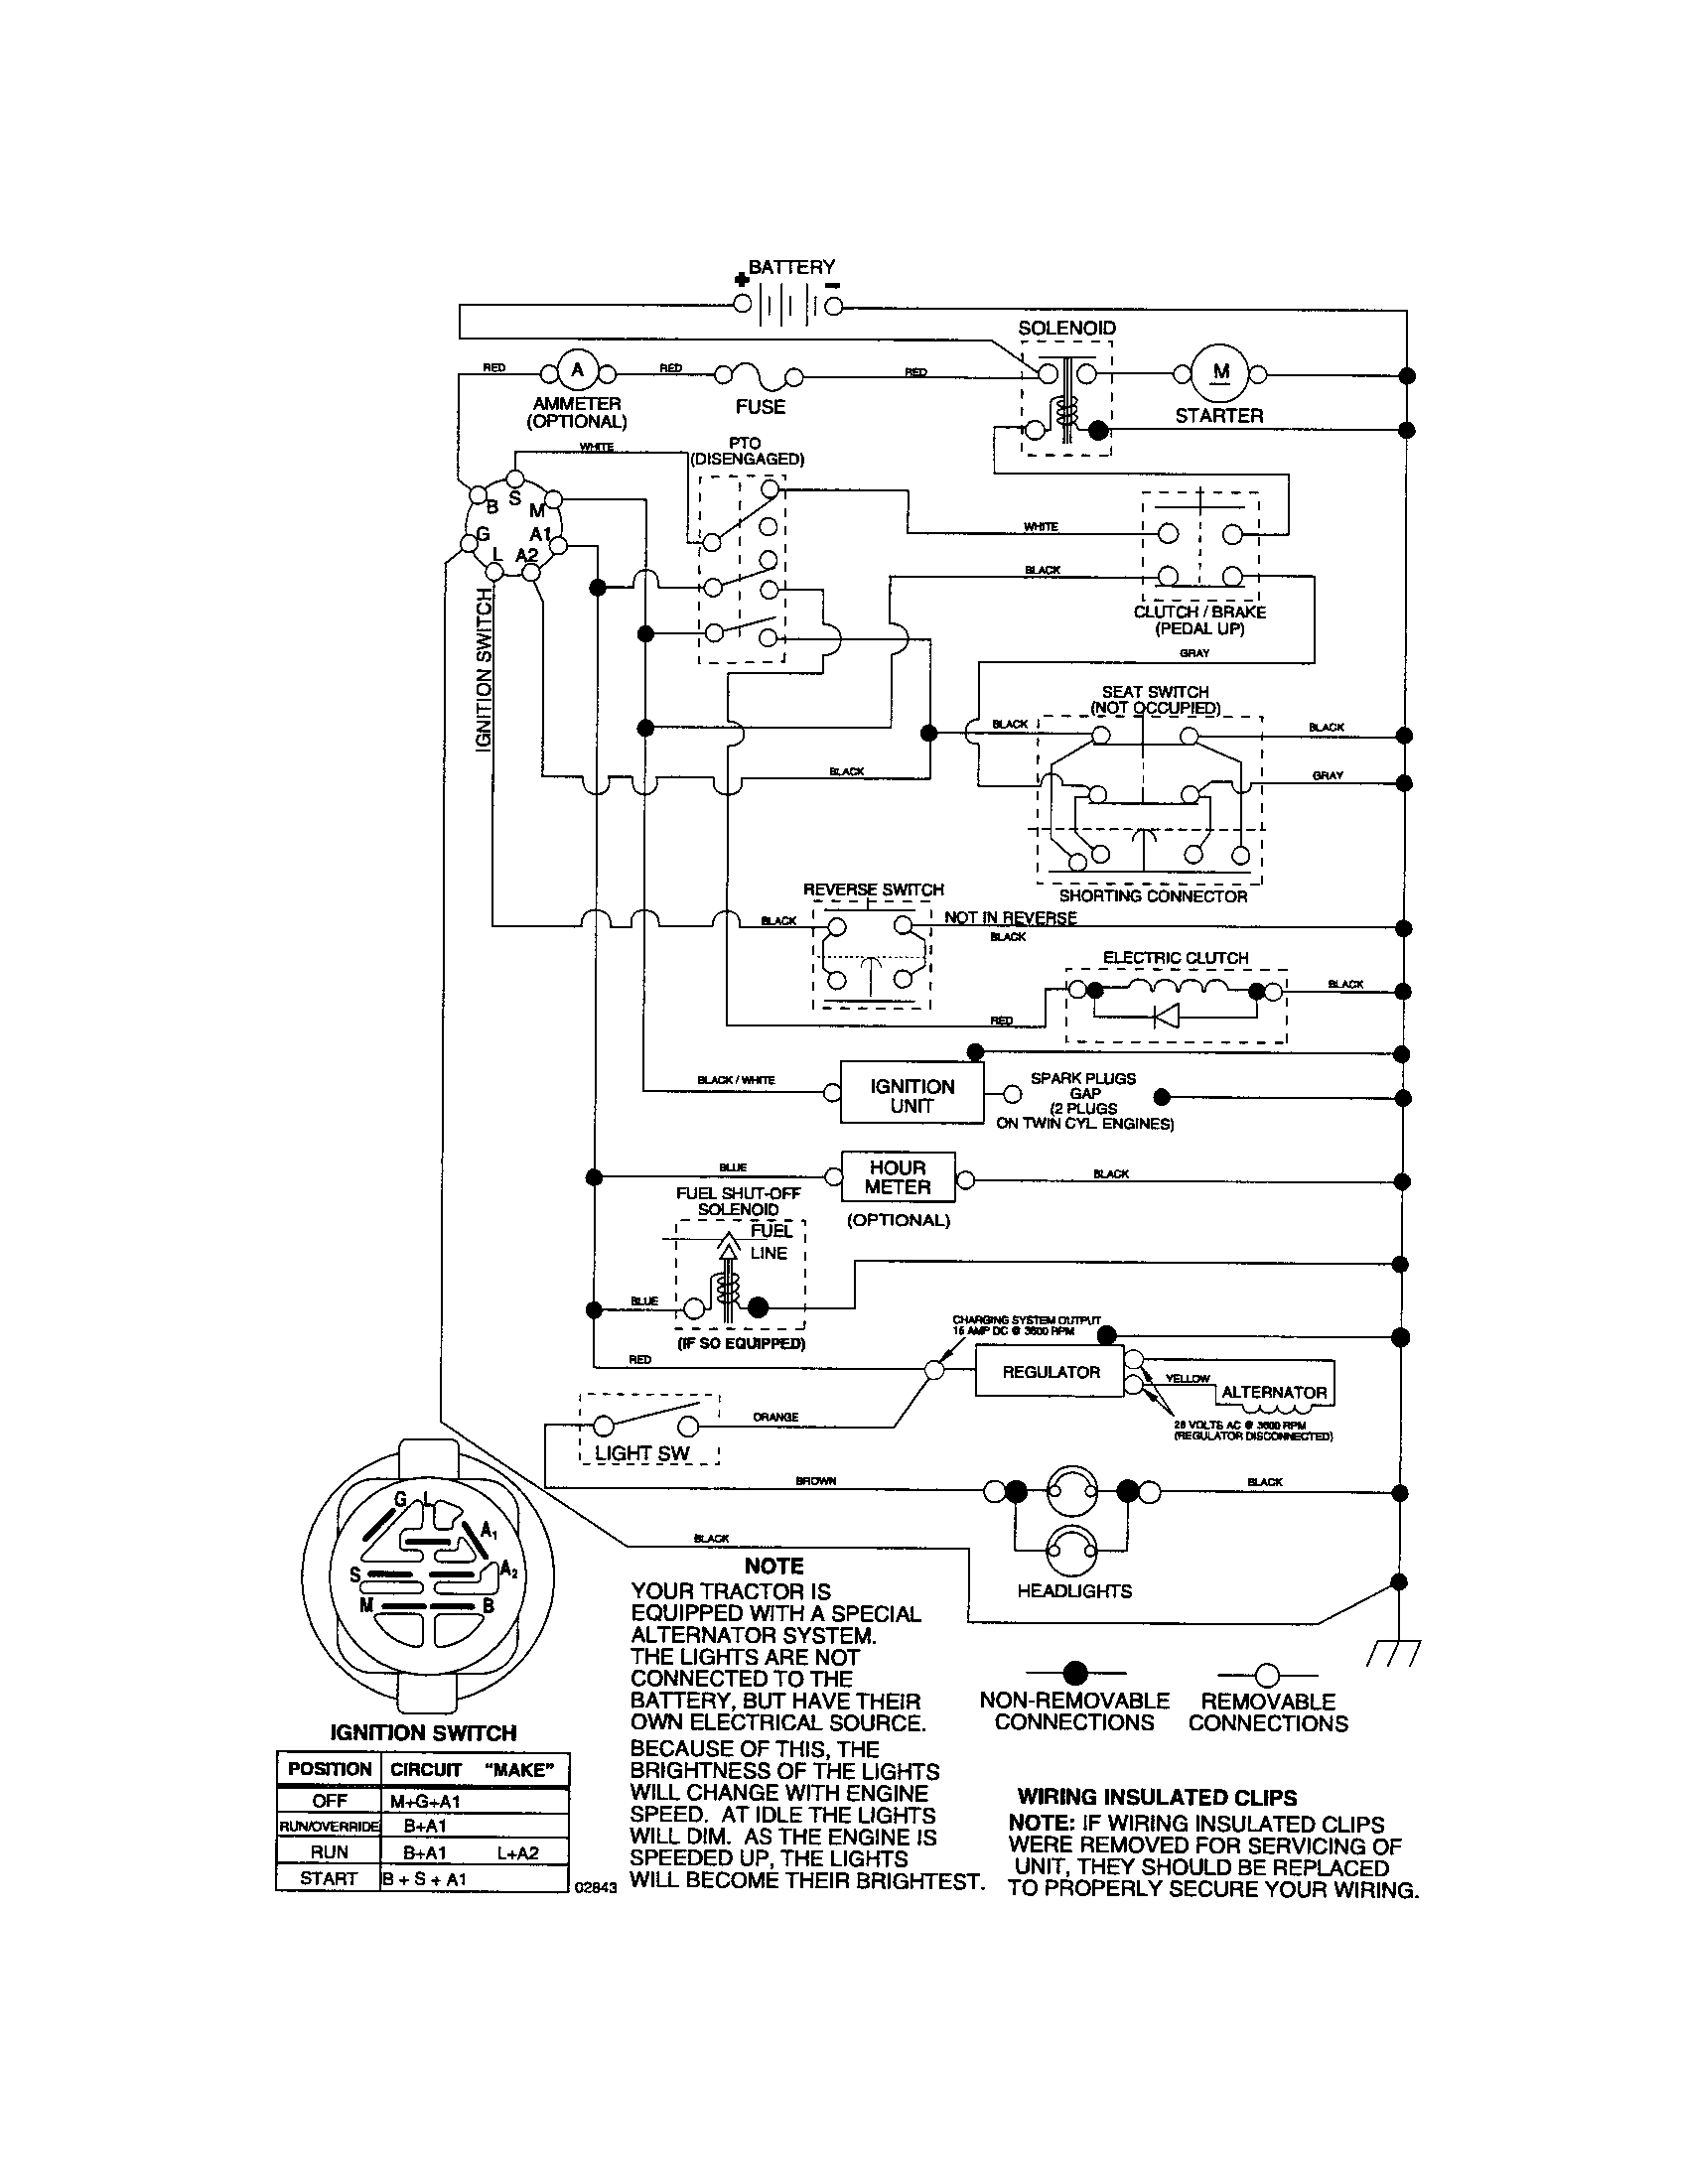 Sears Model  917 275970 Tractor Wiring Diagram